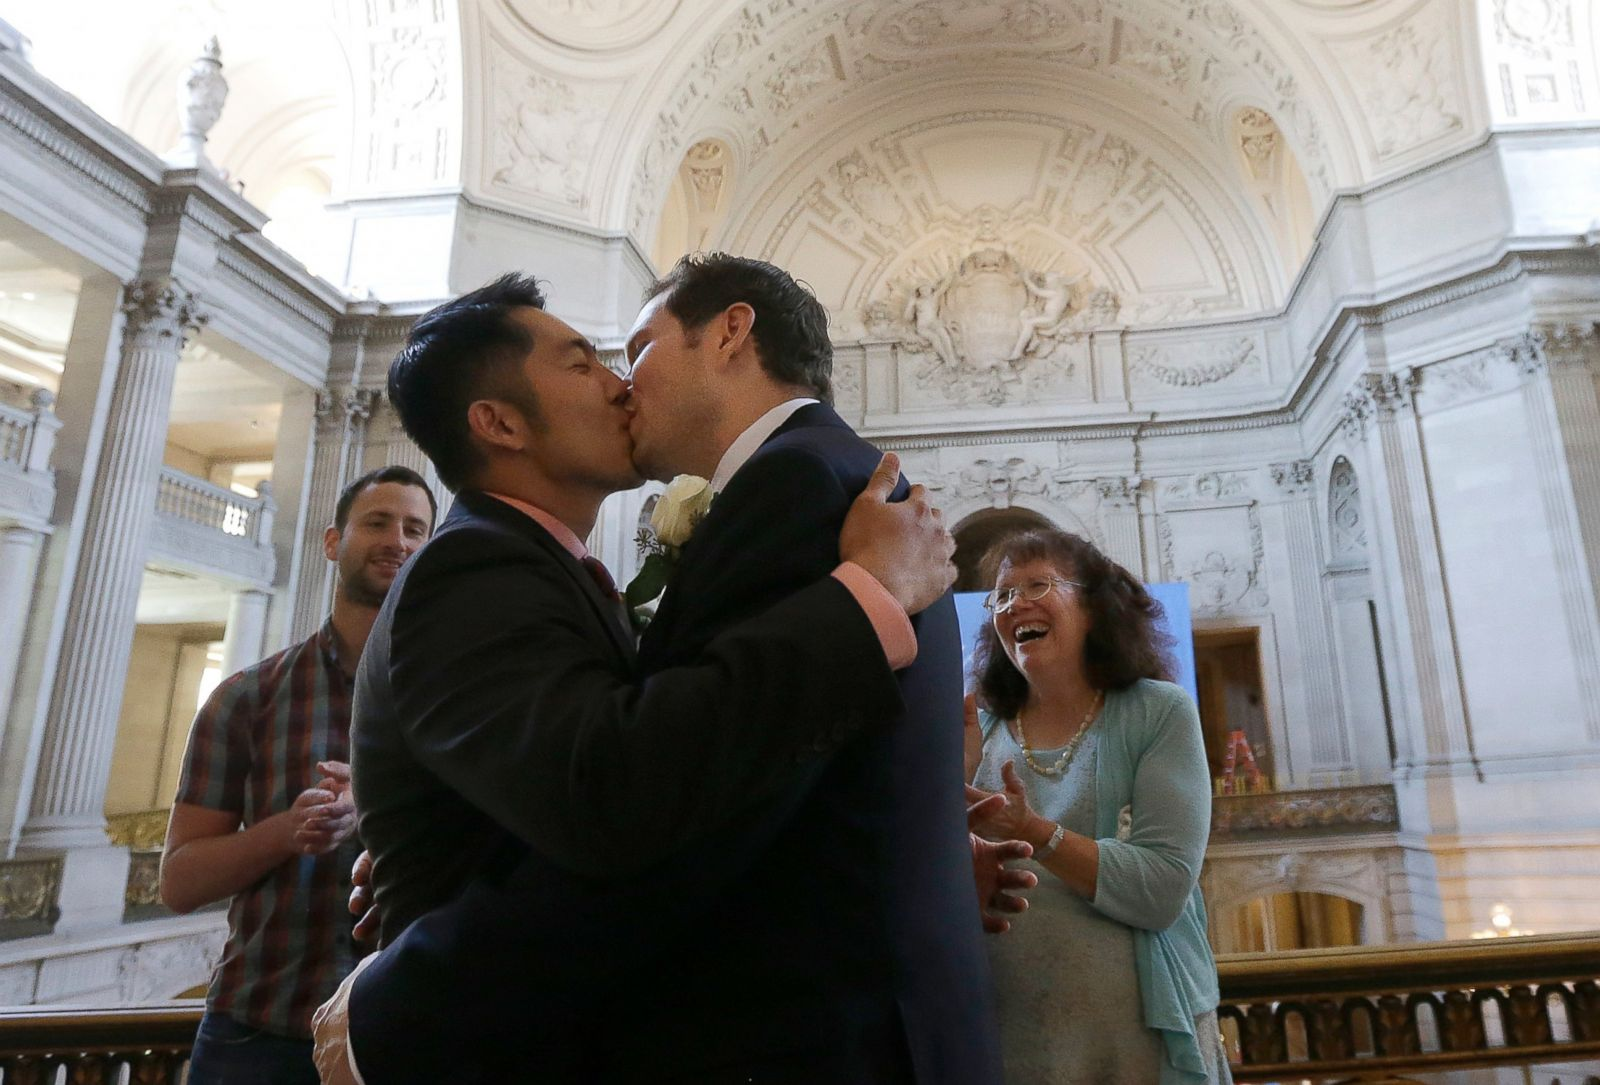 Marriage in the new america